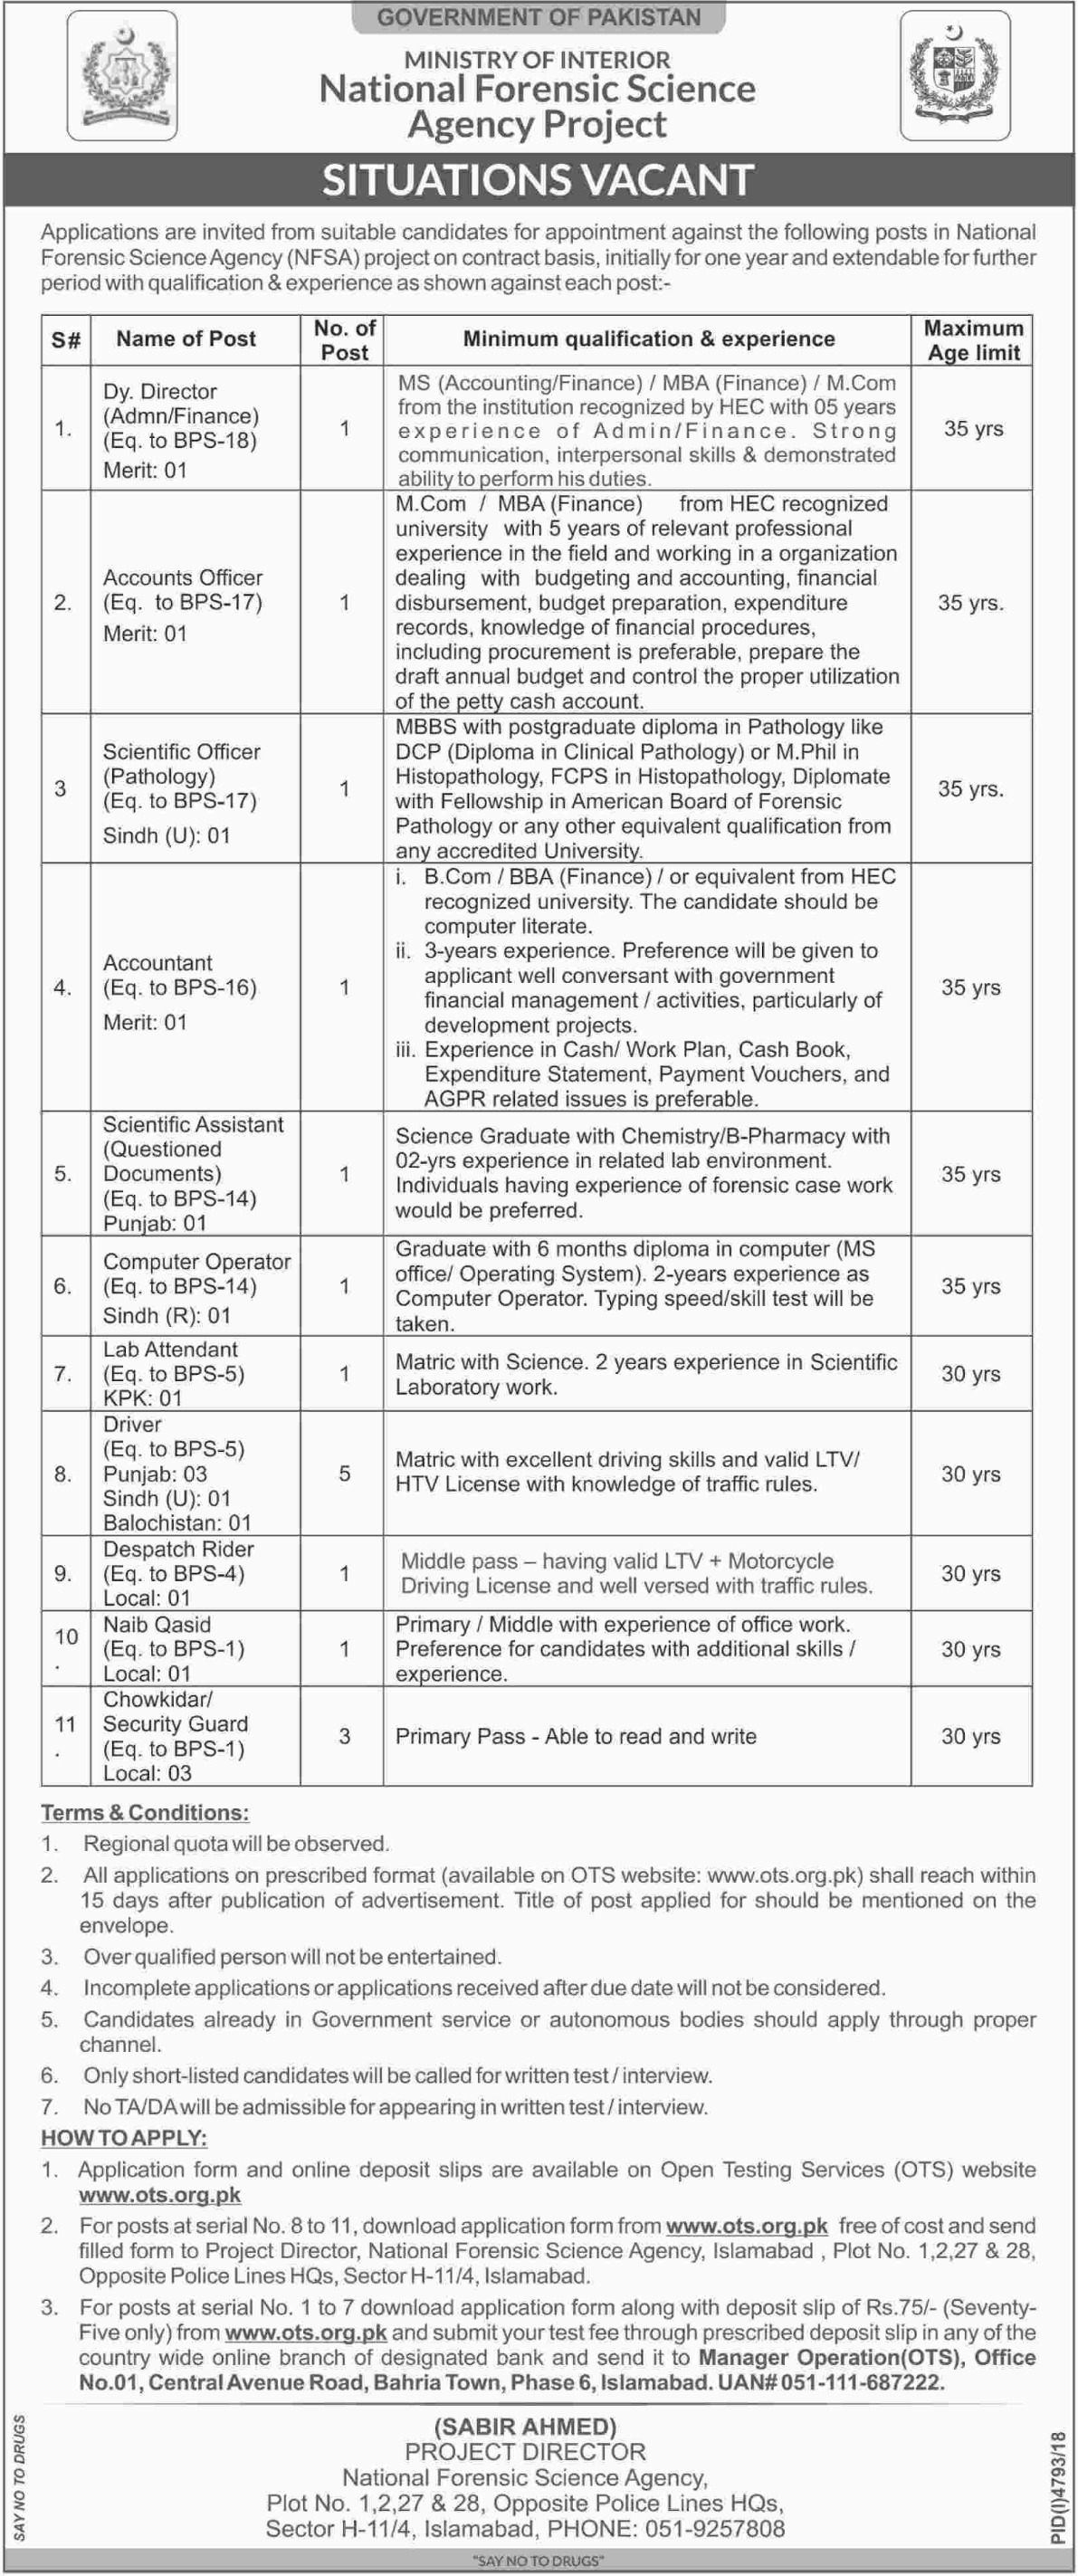 Ministry of Interior Jobs 2019 NFSA National Forensic Science Agency Project Apply through OTS